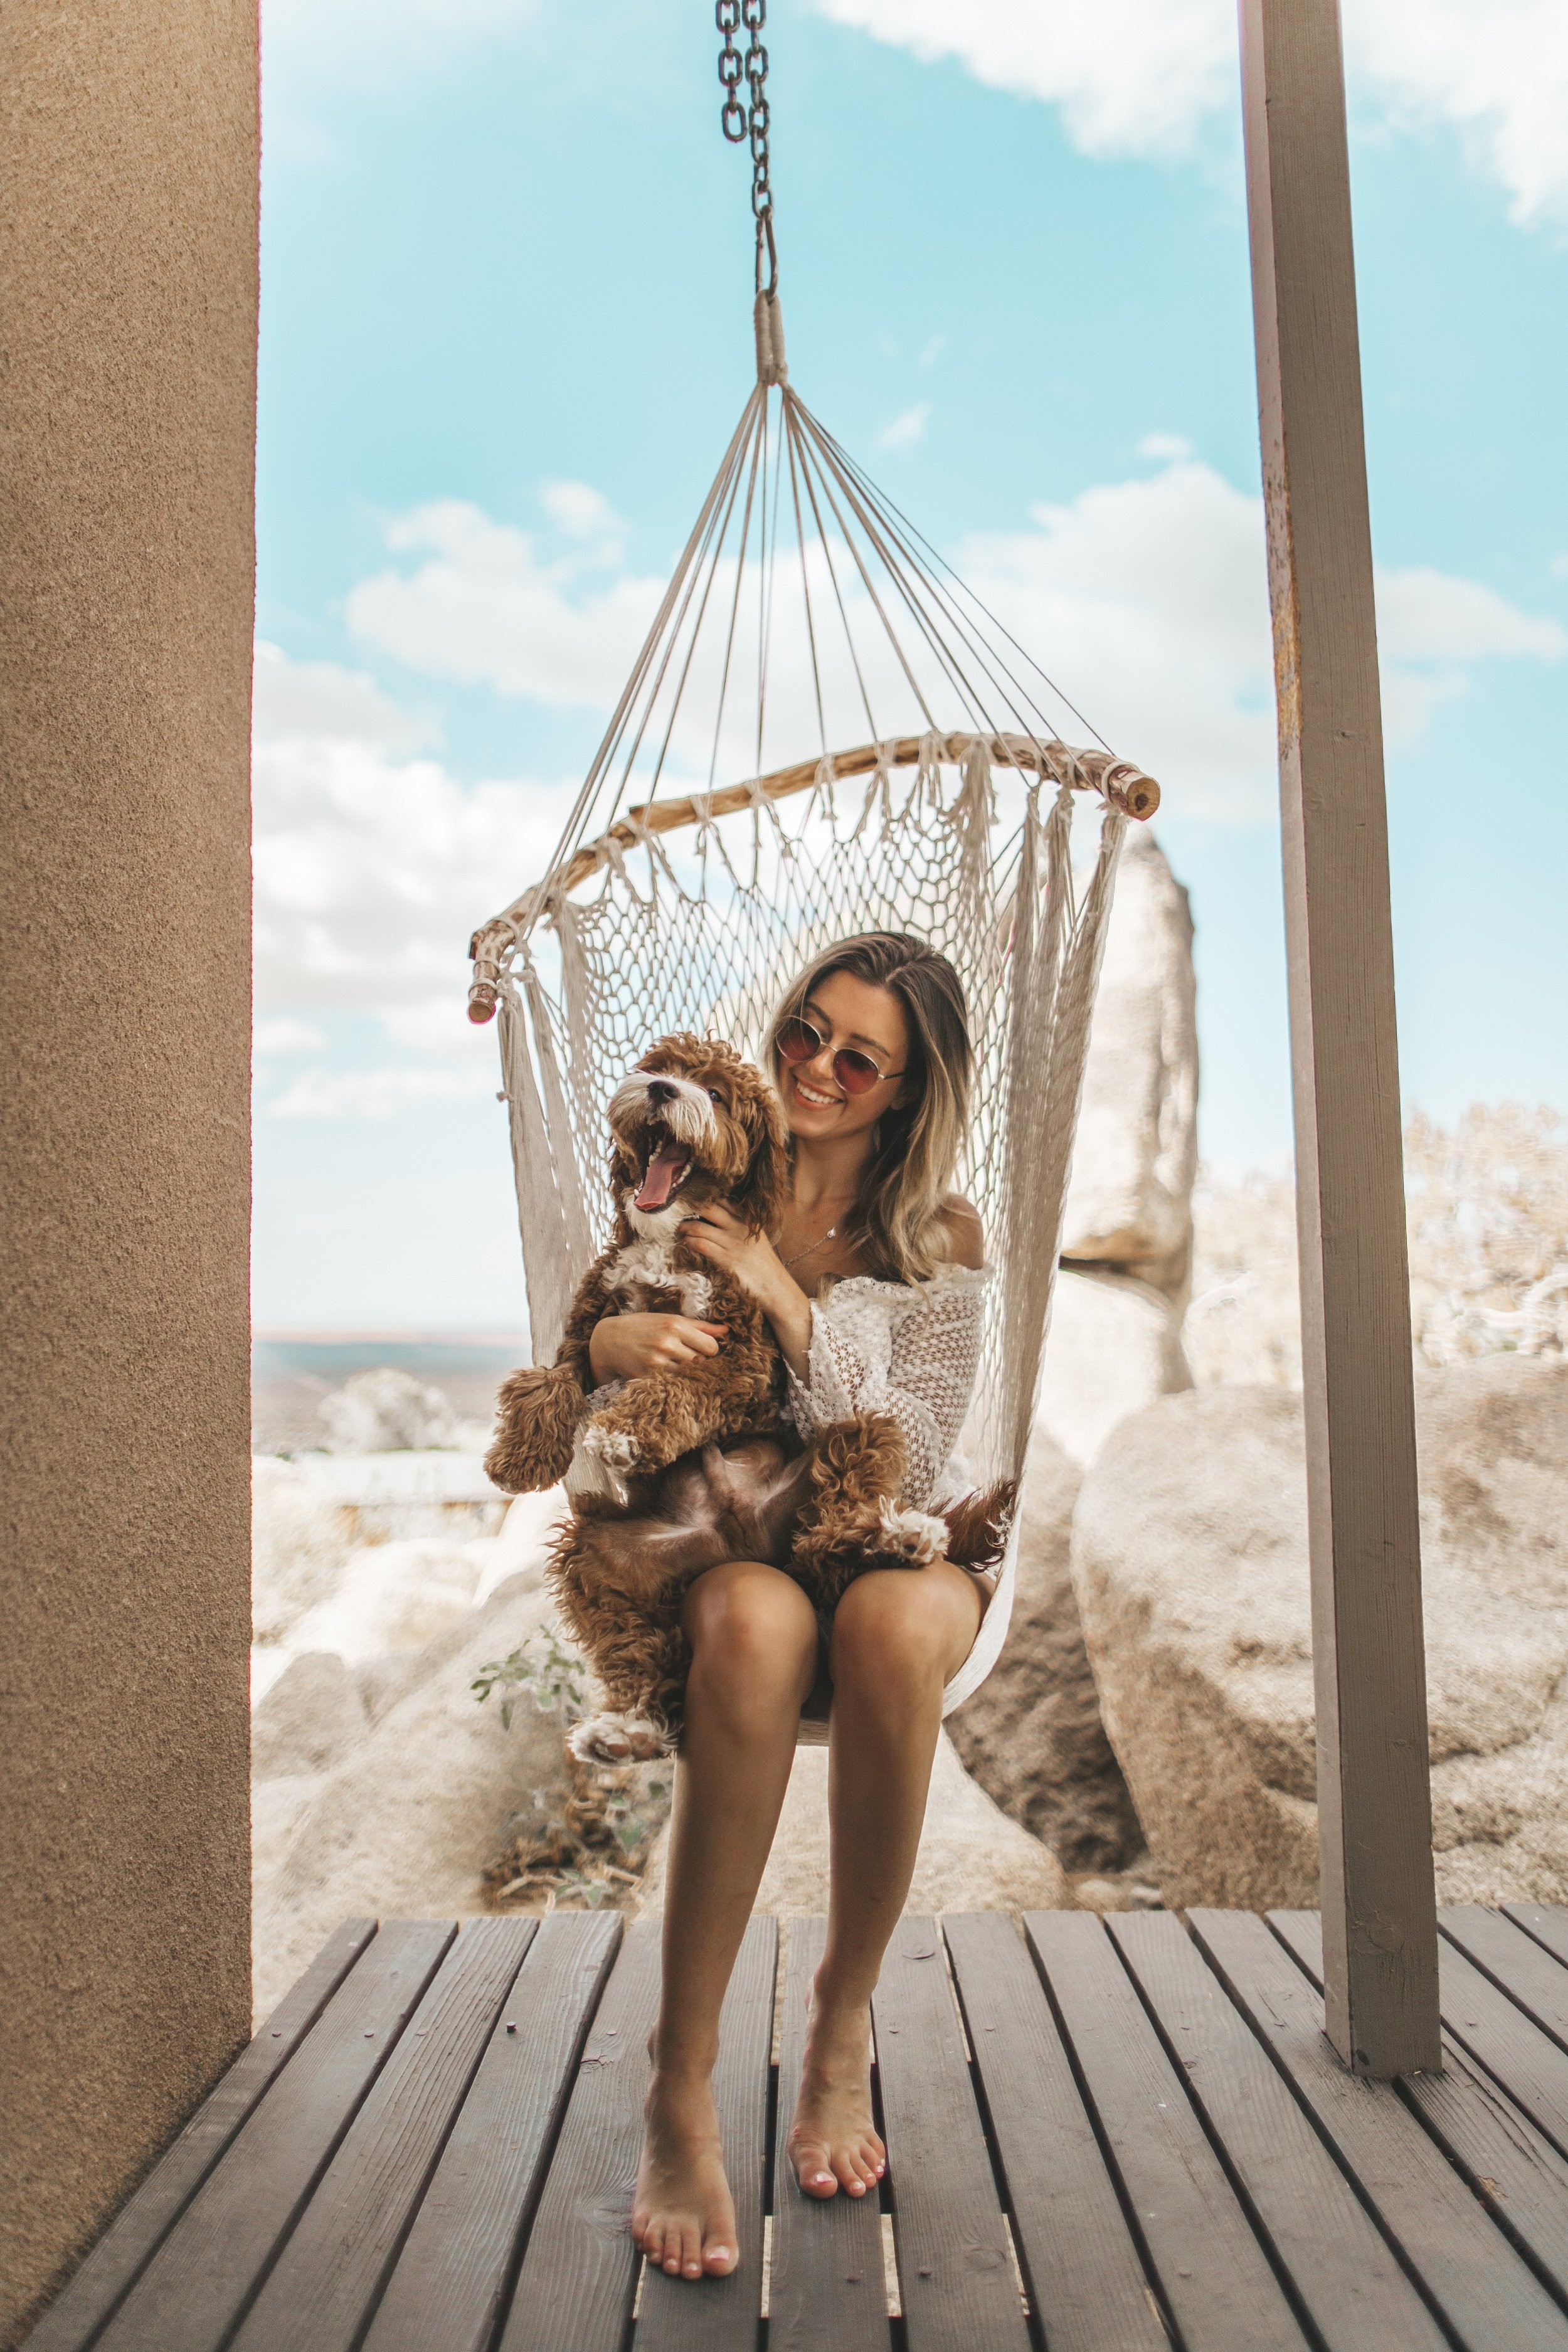 Private Vacation Photography Session with Photographer - Connect with a local professional photographer in Palm Springs and capture your most memorable moments during this private photoshoot.